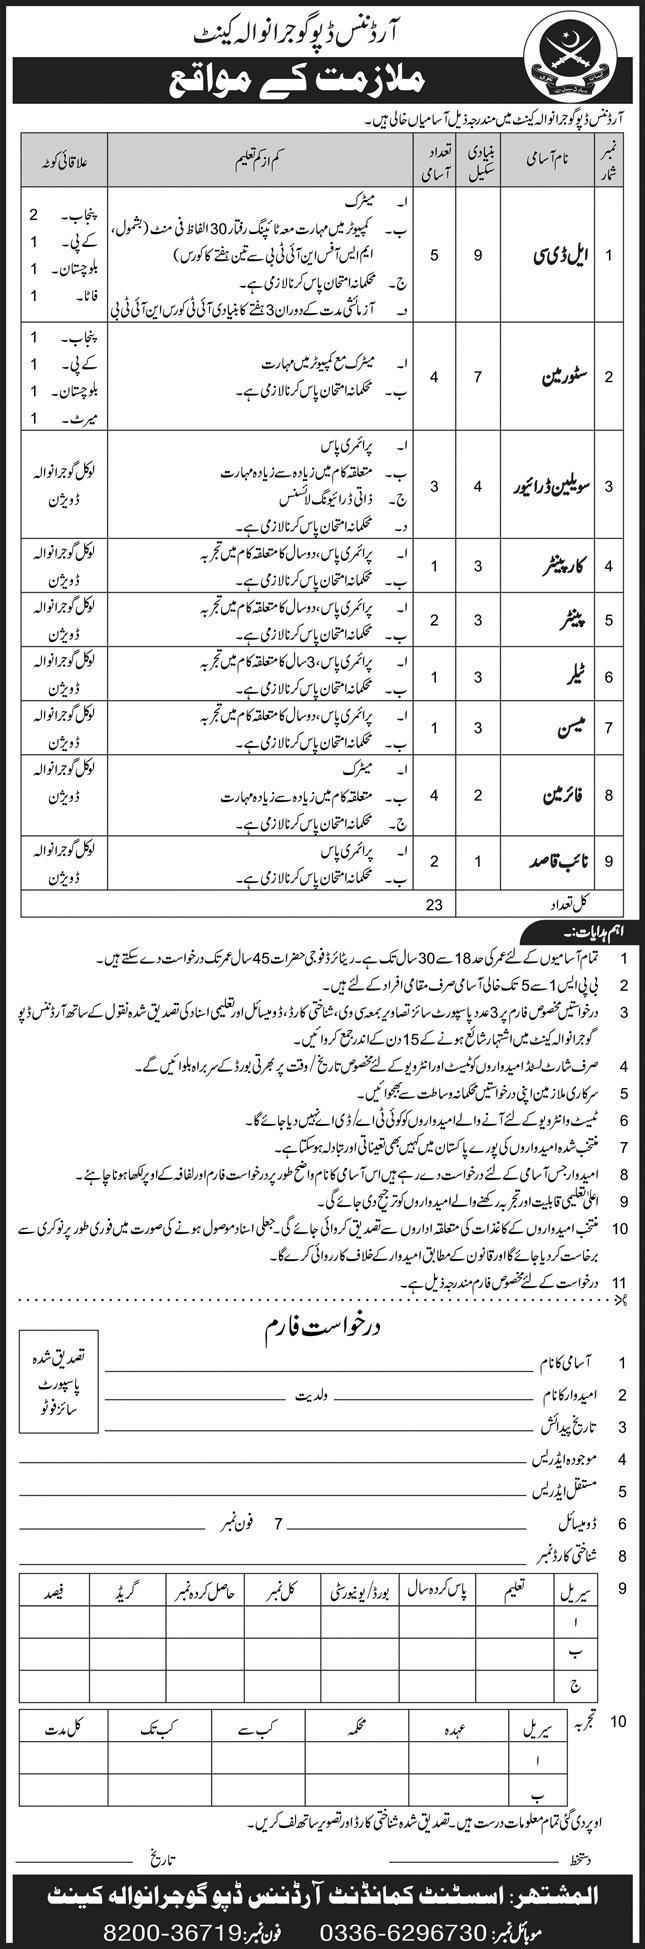 Ordnance Depot Cantt Pak Army Jobs November 2020 For LDC, Storeman and More